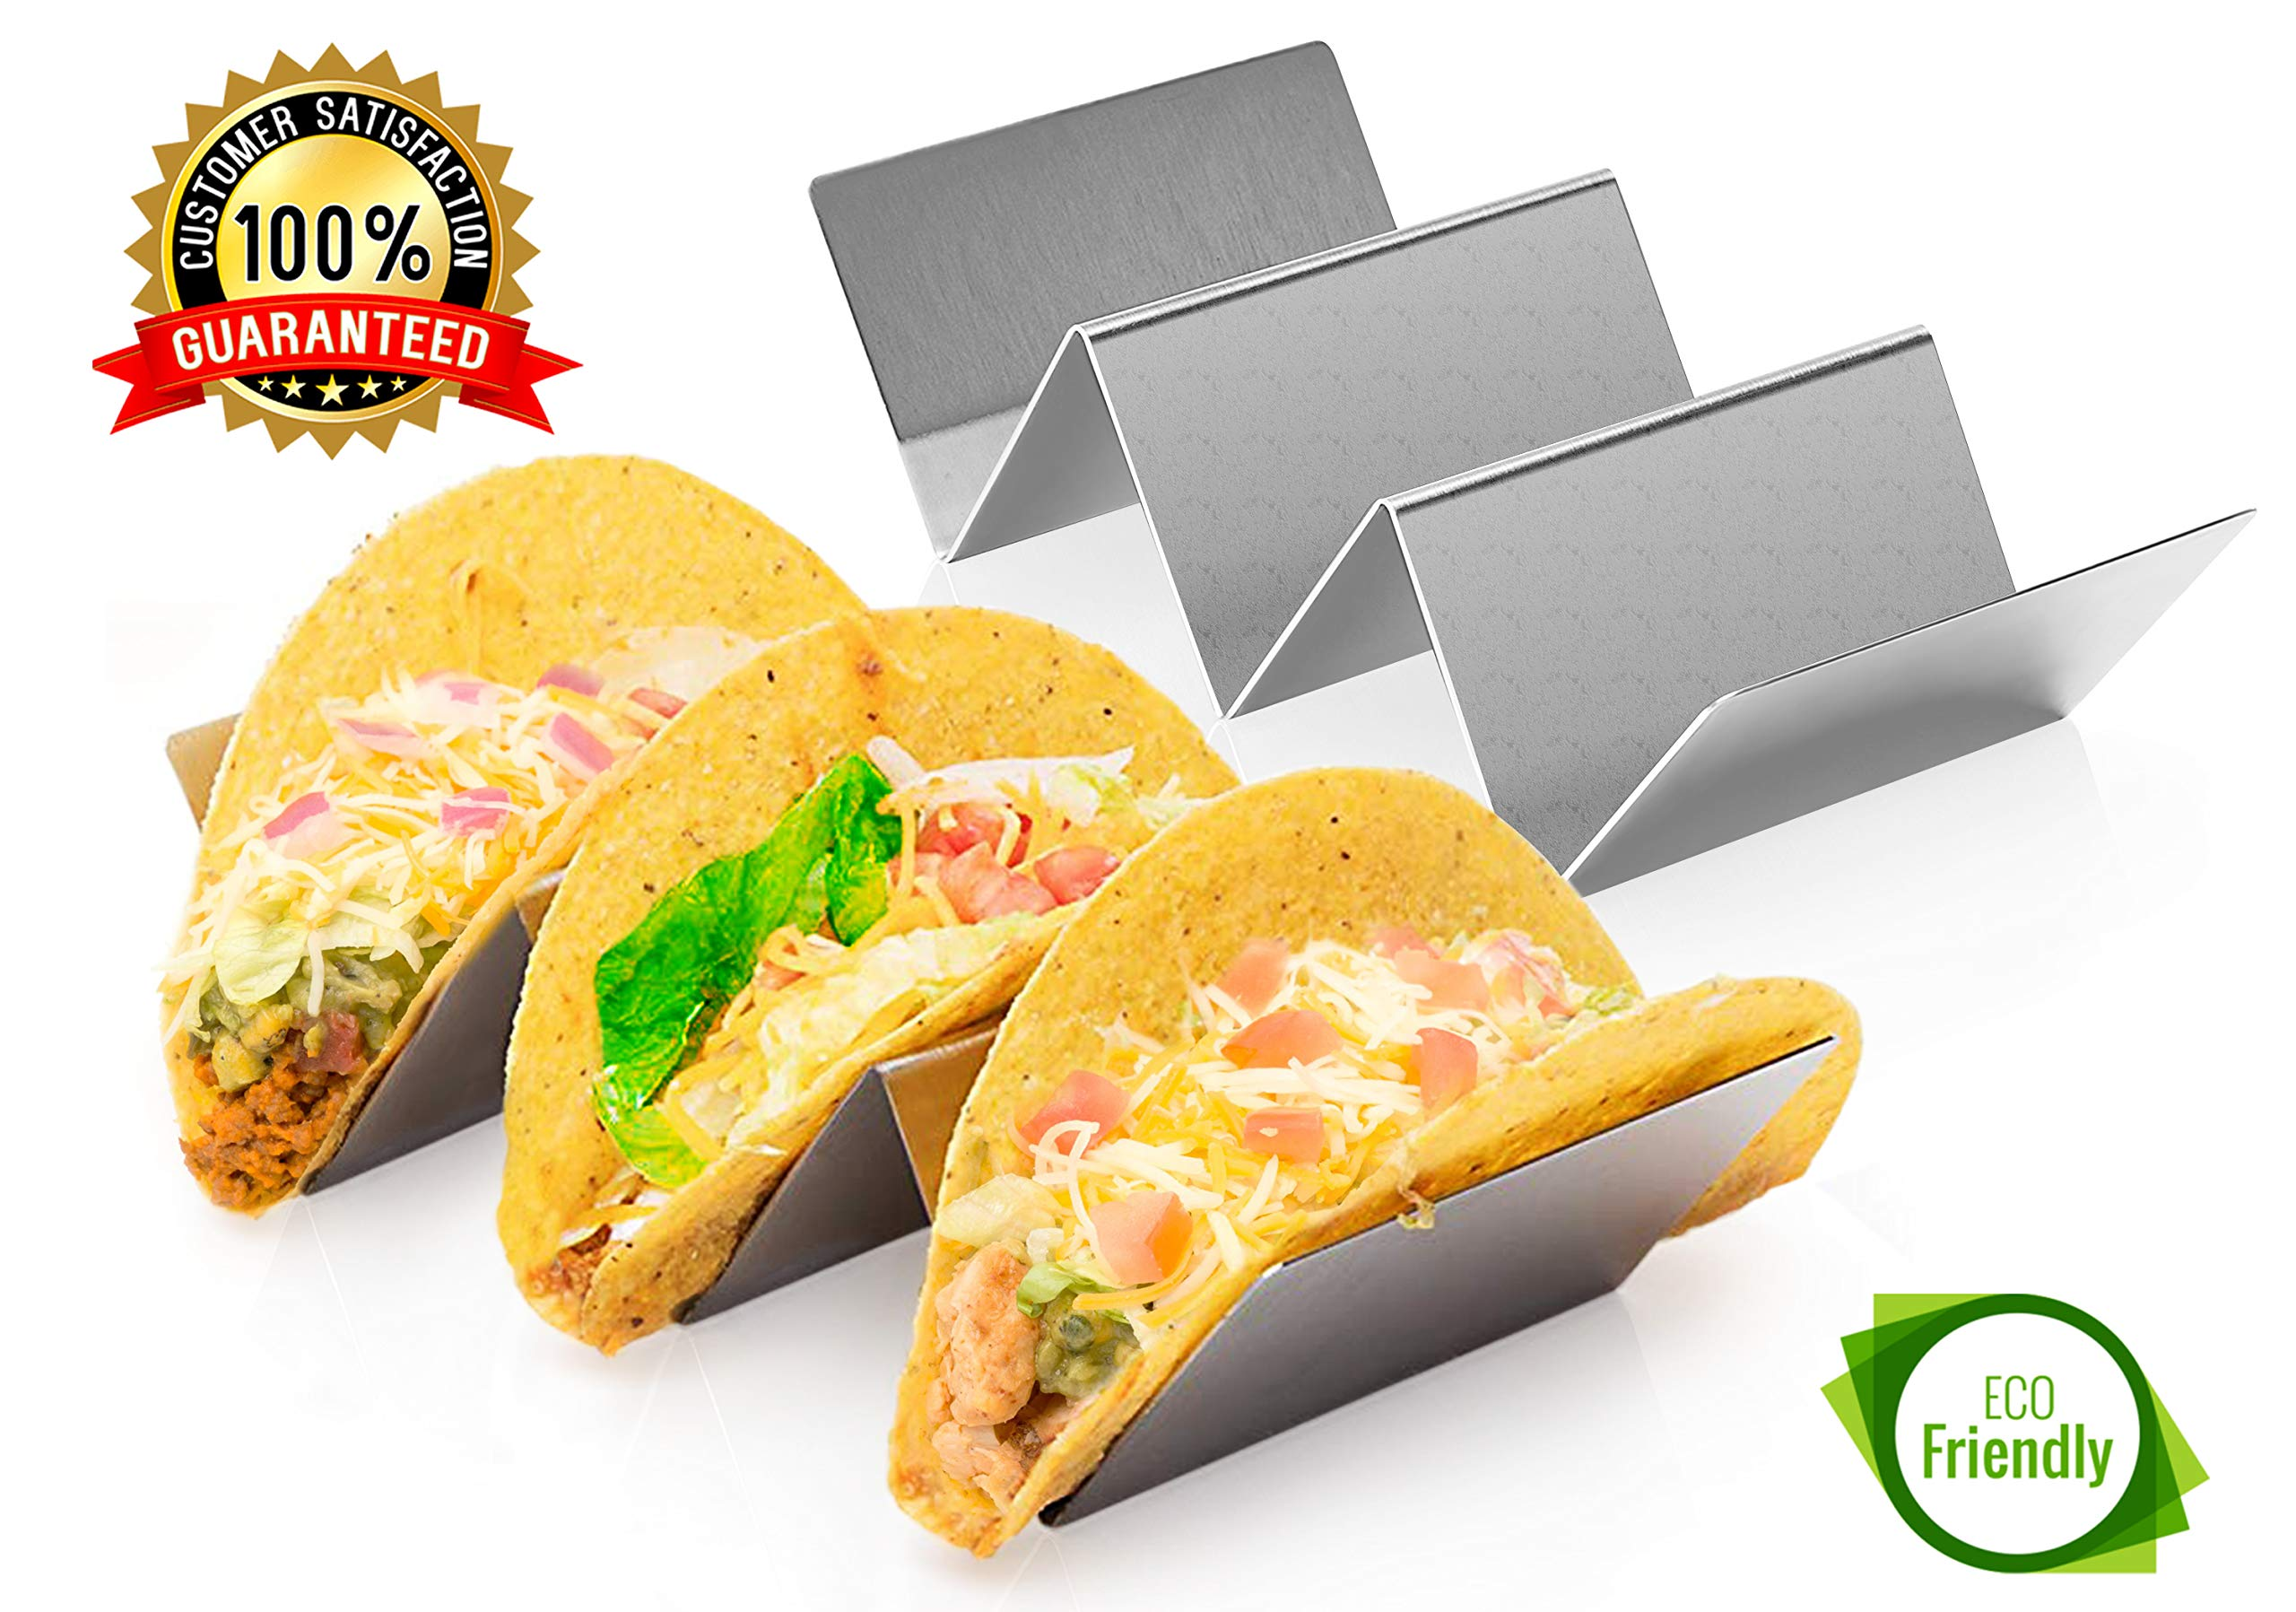 2 Pack Stainless Steel Taco Holder Tray, Taco Truck Stand Holds Up To 3 Tacos Each as Plates, Use as a Shell Baking Rack - Safe for Dishwasher, Oven, and Grill, Holders Size 8'' x 4'' x 2''